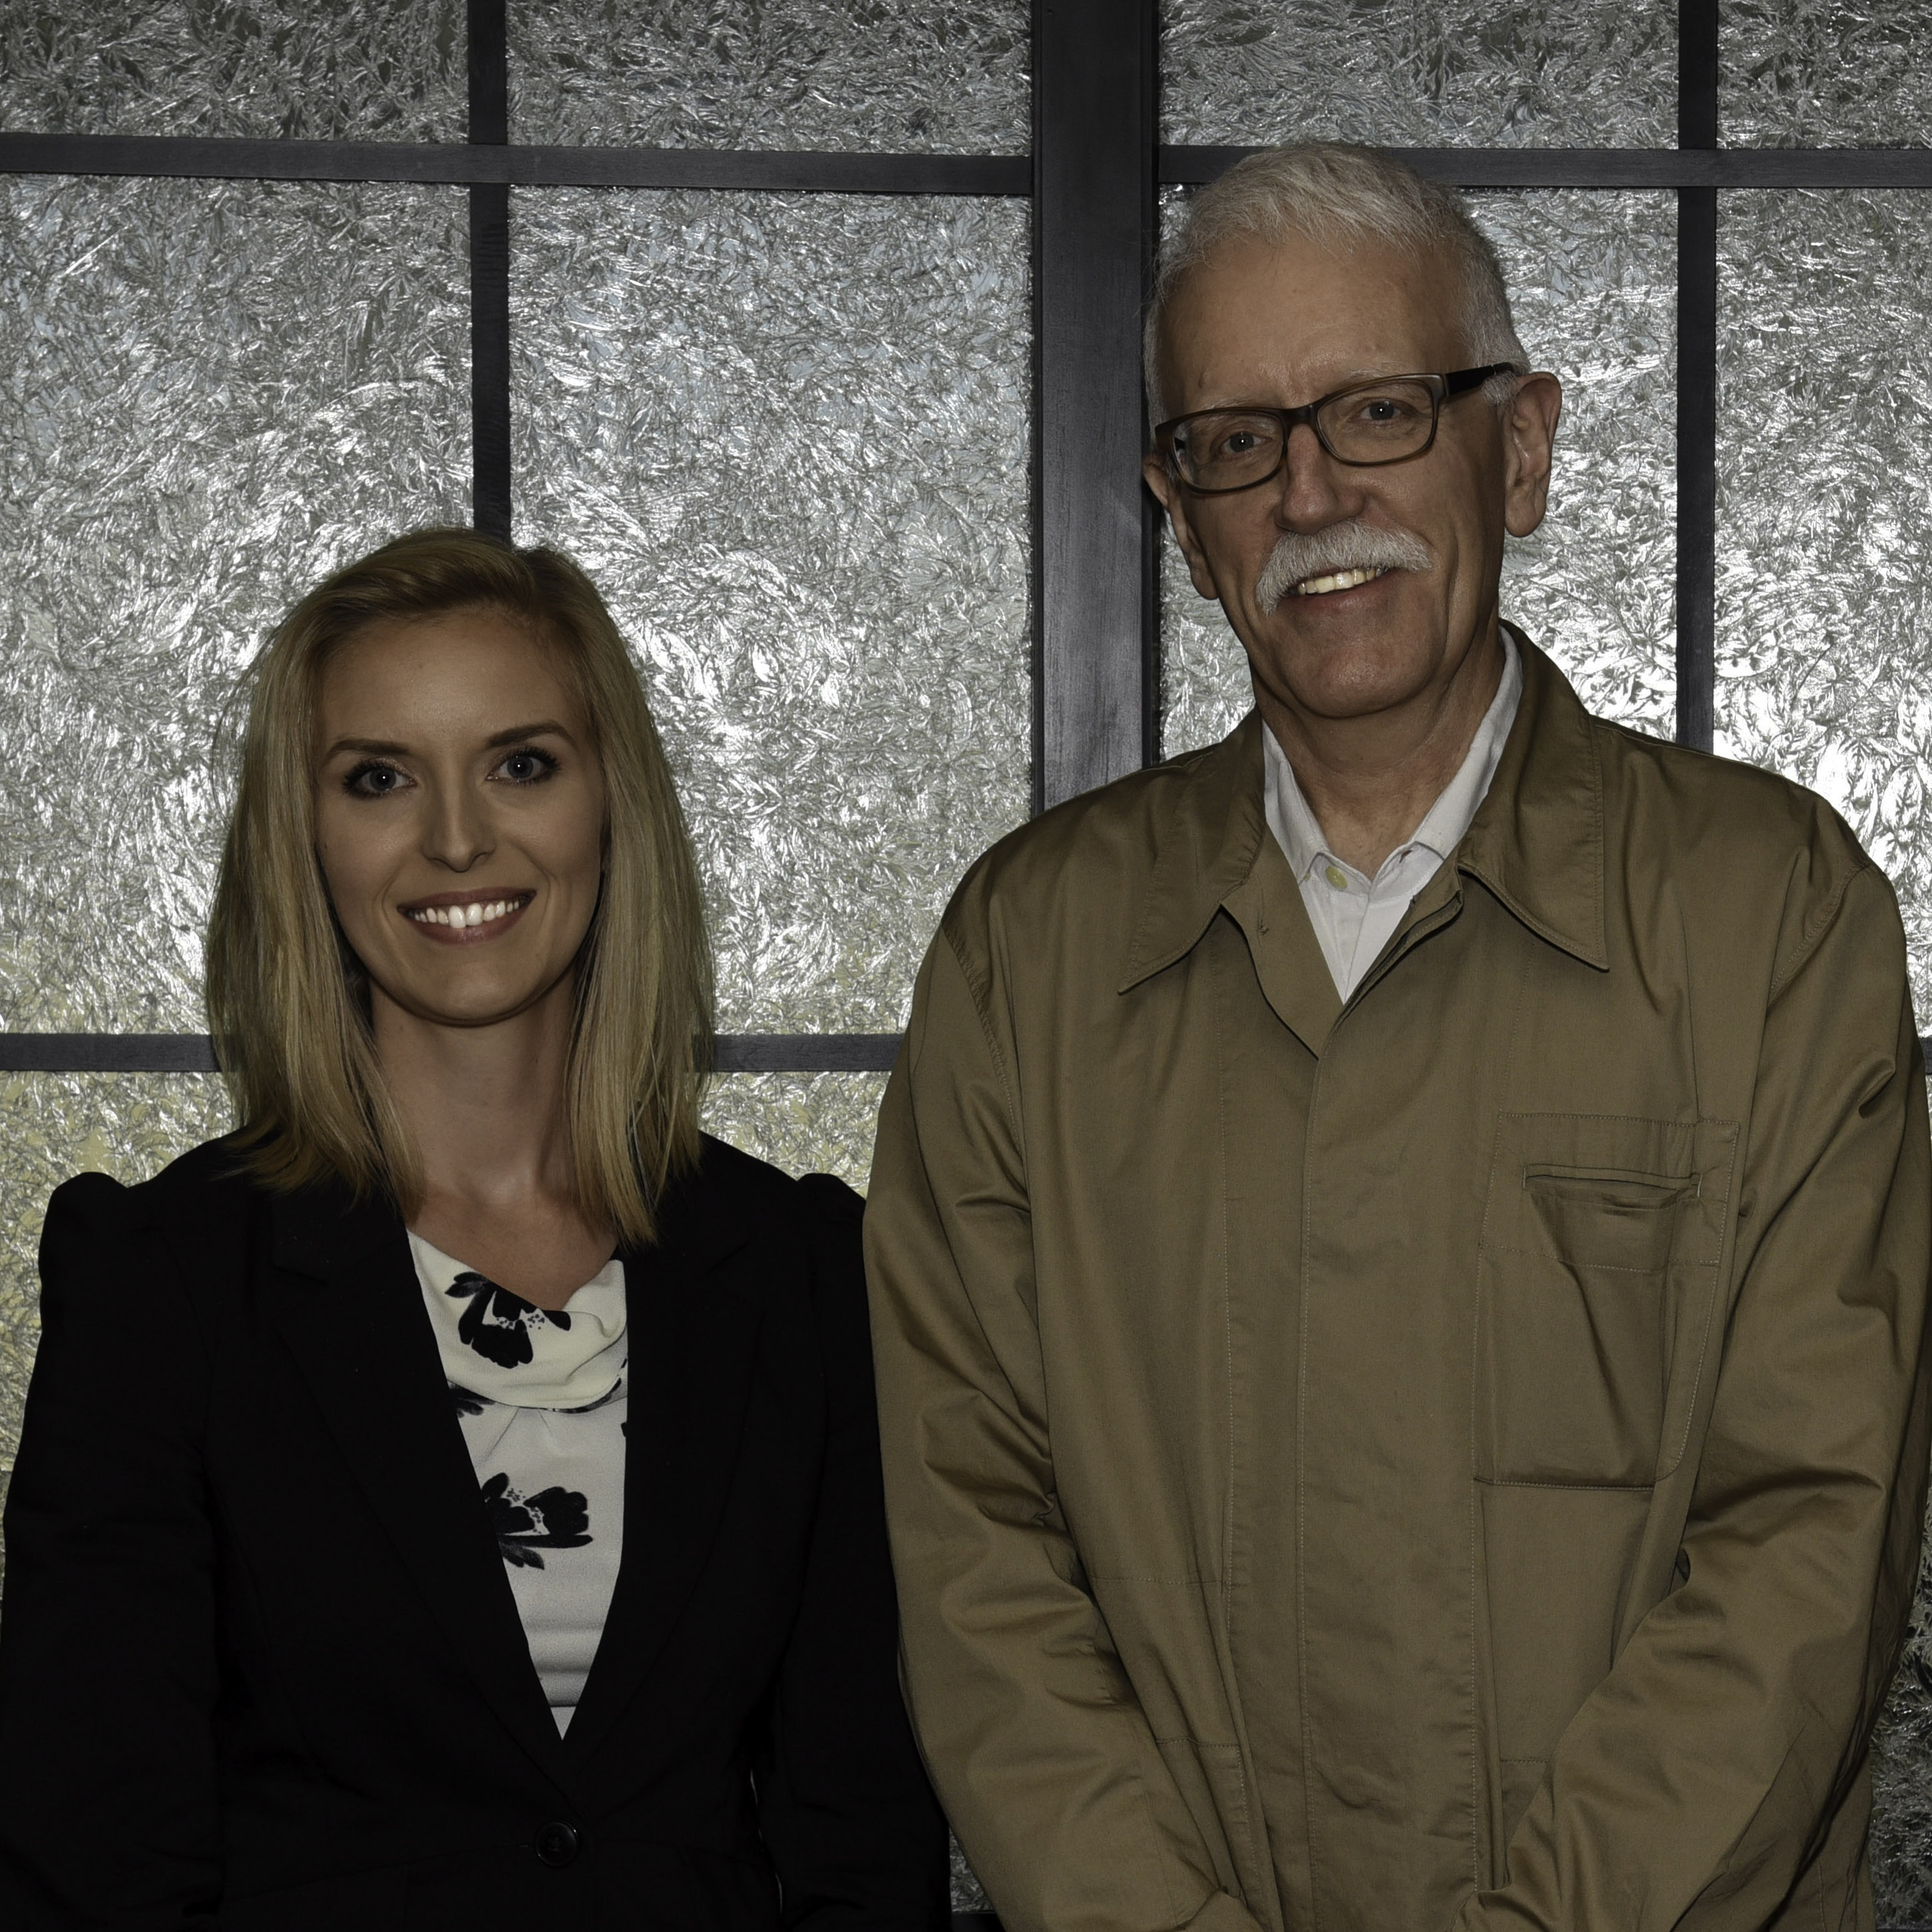 New AIP member Katelyn Arquette (left) studied under veteran AIP member Richard Masters (right) at the University of Wisconsin-Oshkosh in 2010.